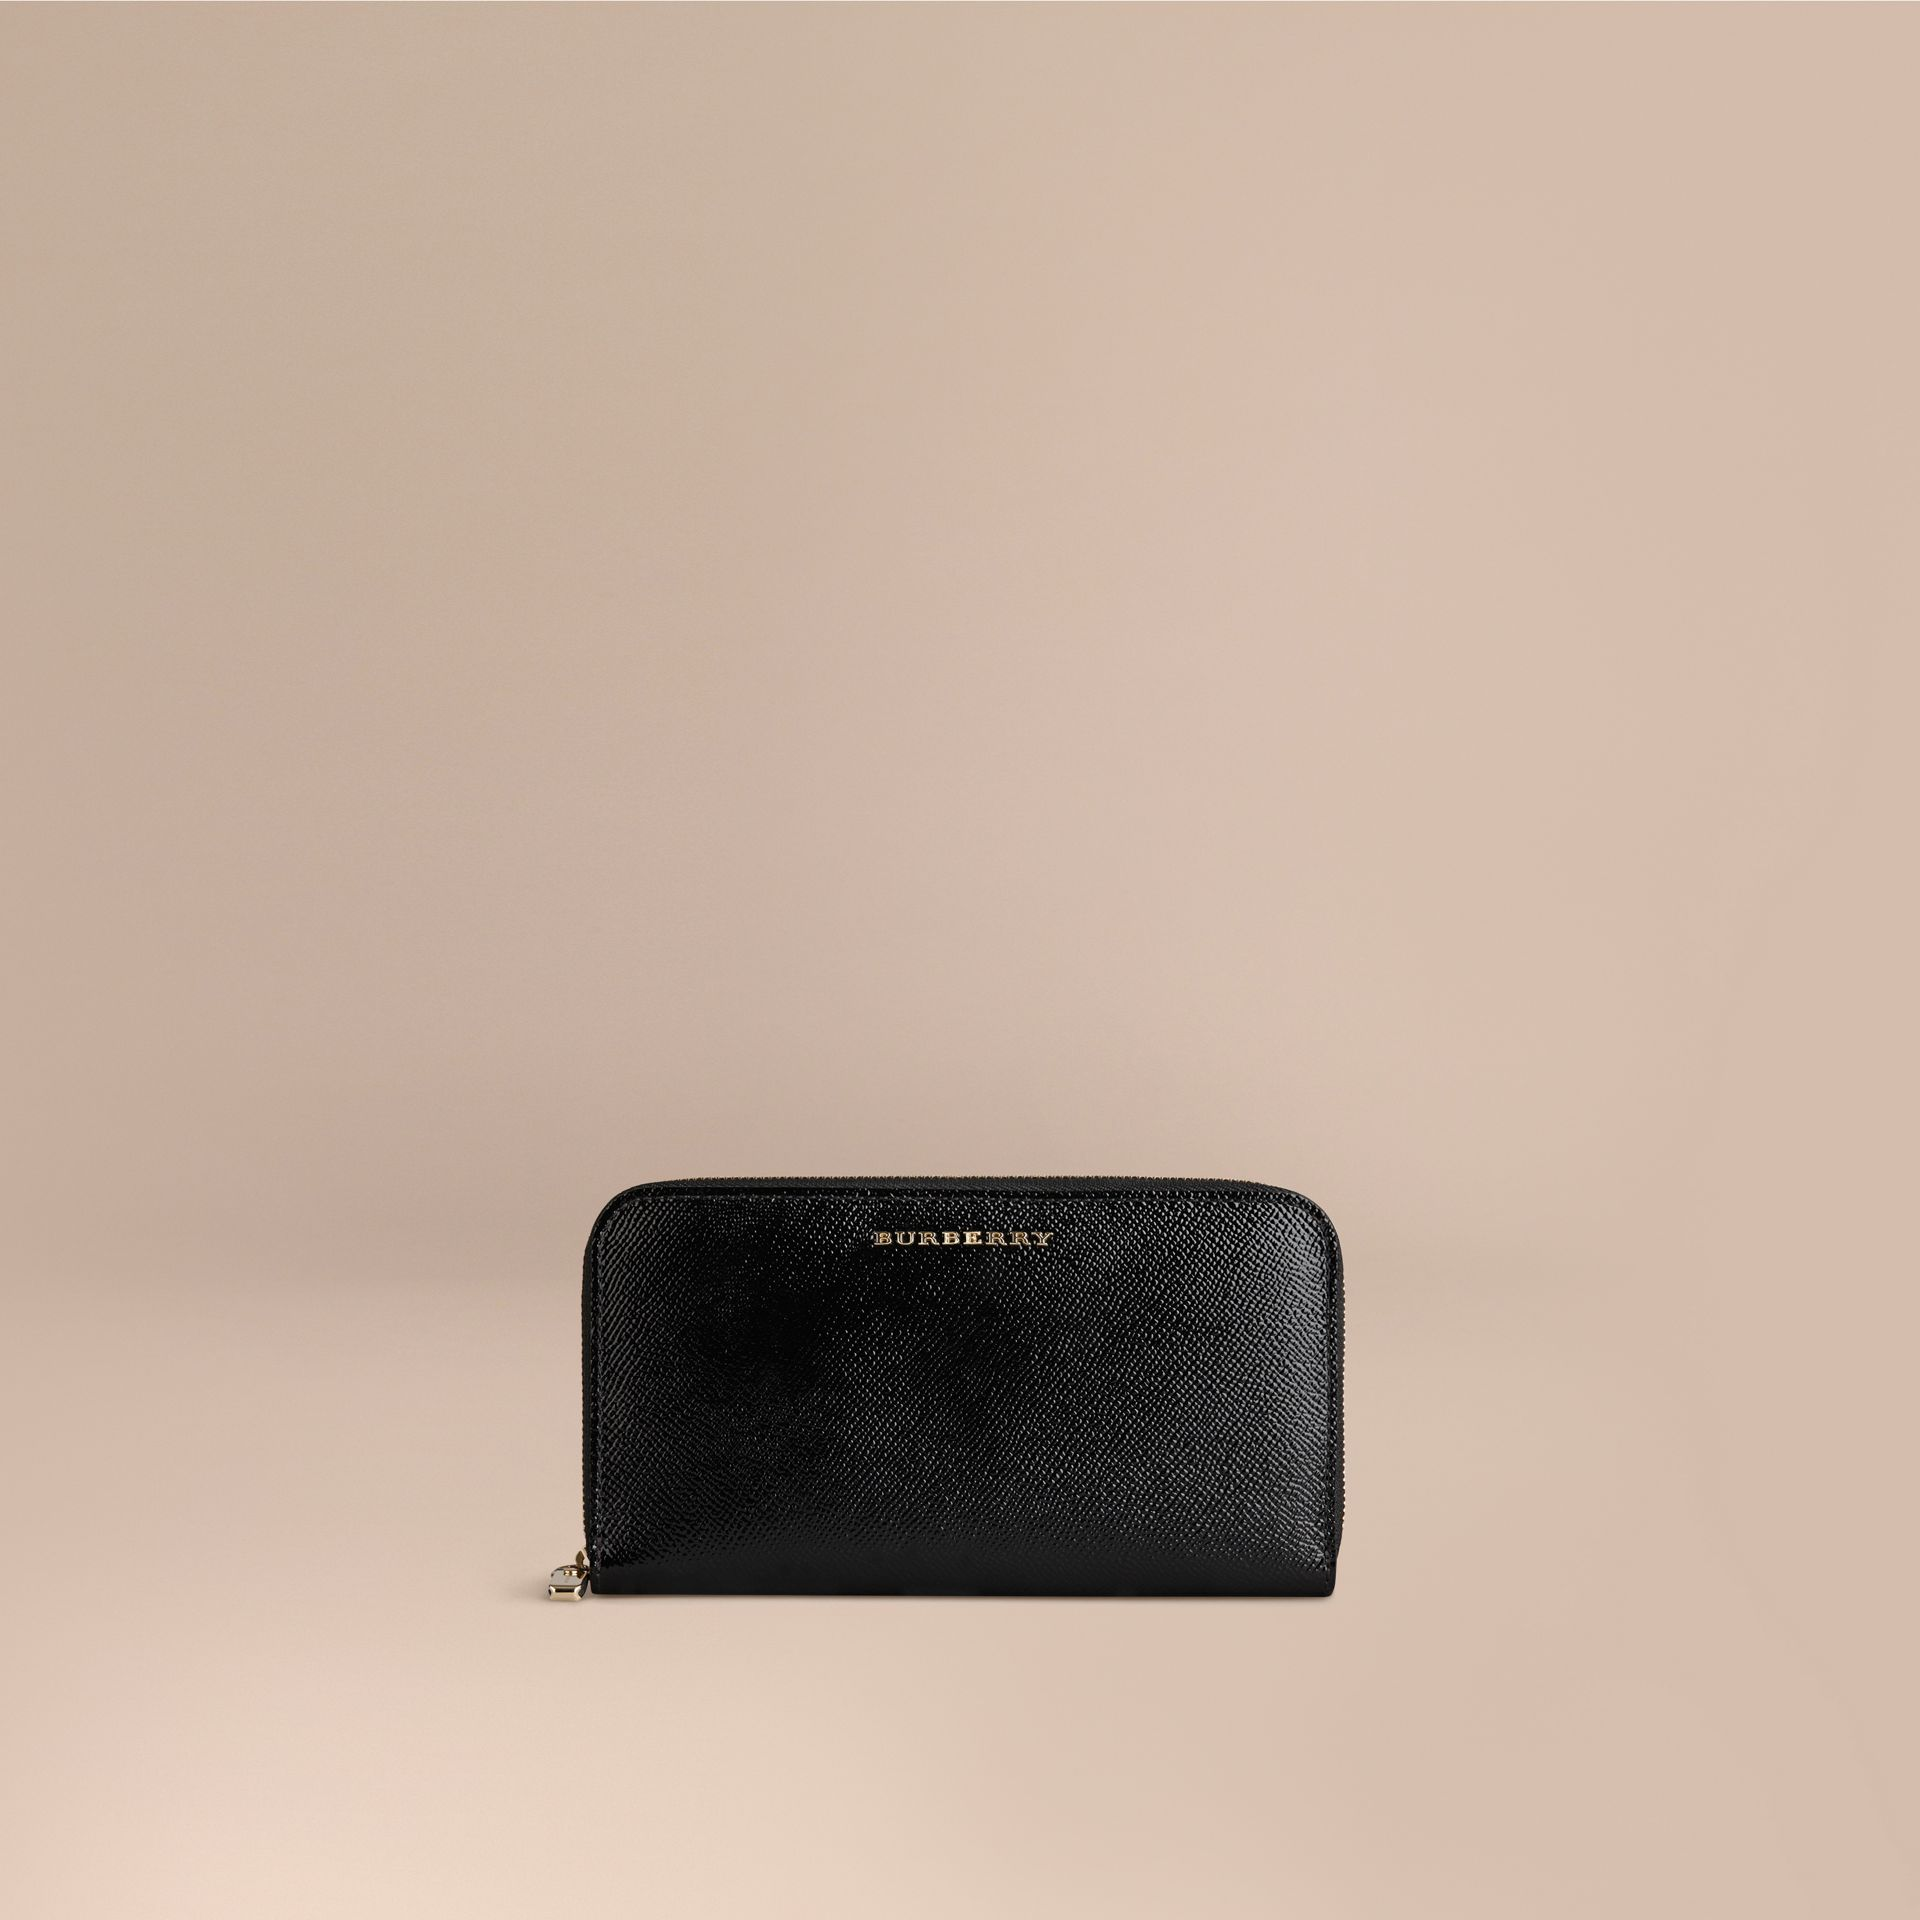 Patent London Leather Ziparound Wallet Black - gallery image 1